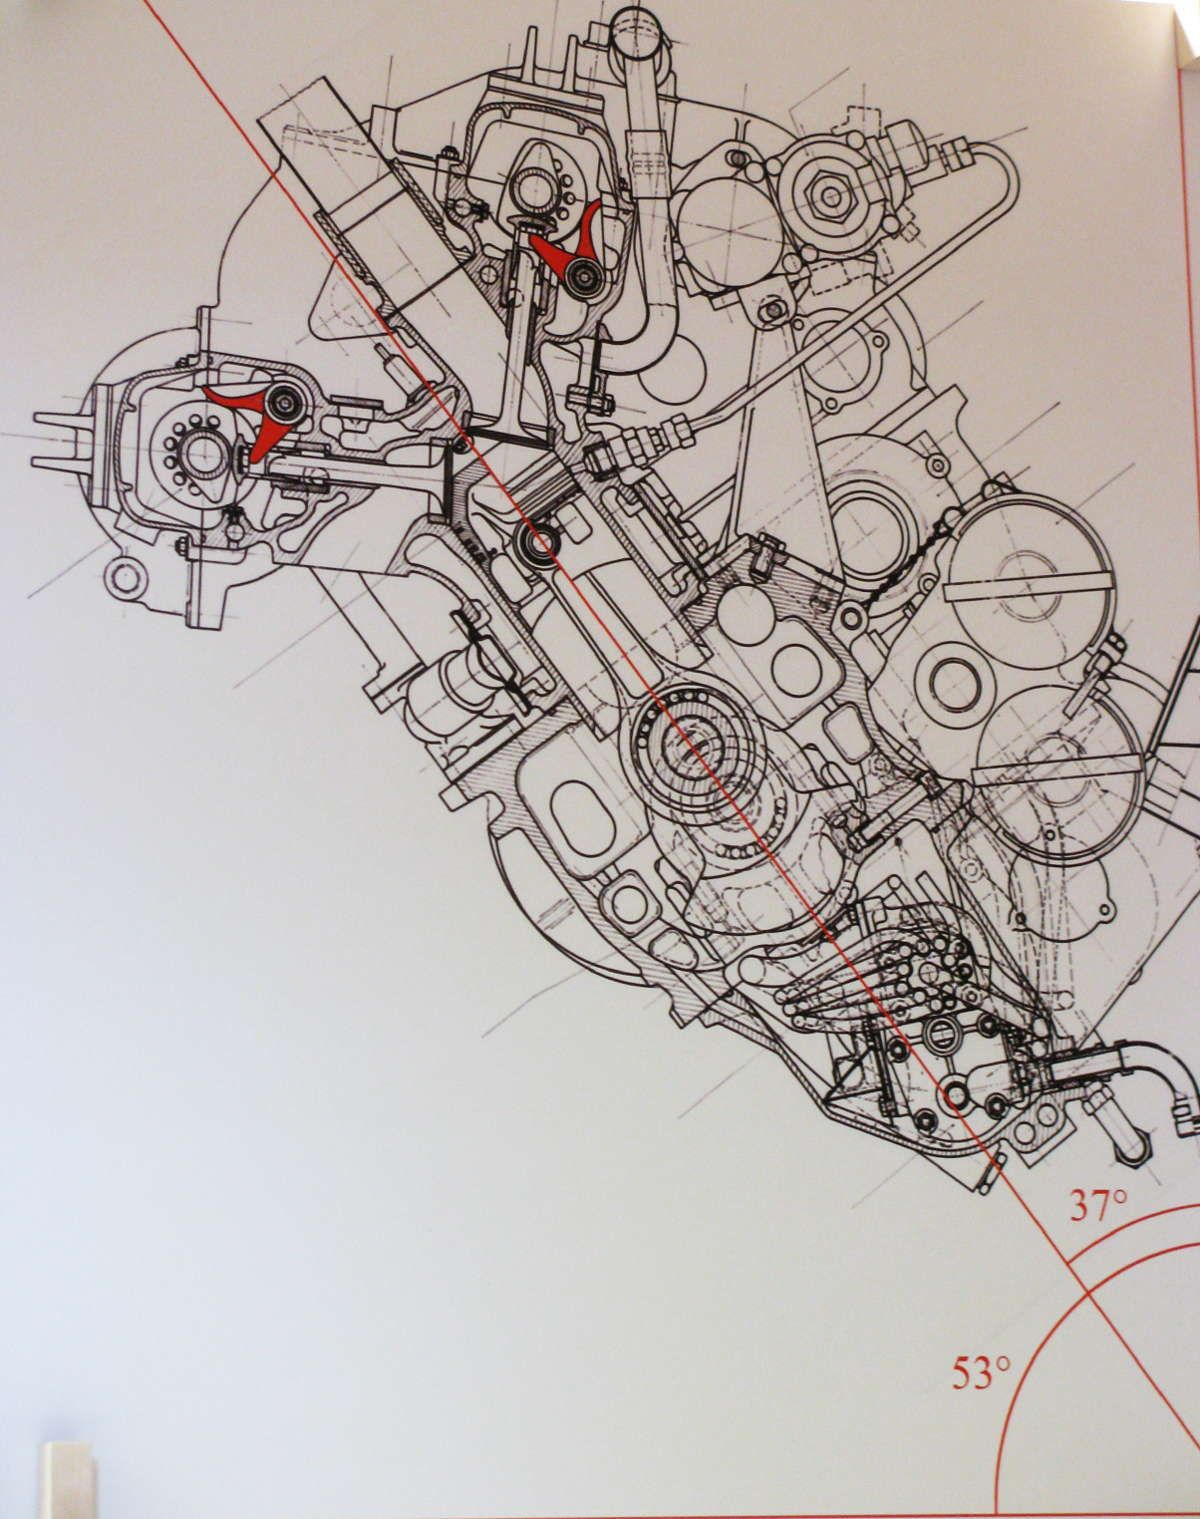 Technical Drawings For The Win Art Of Machine Engineering Velocette1958leenginediagramjpg Blueprint Mechanical Design Illustration Motorcycle Engine